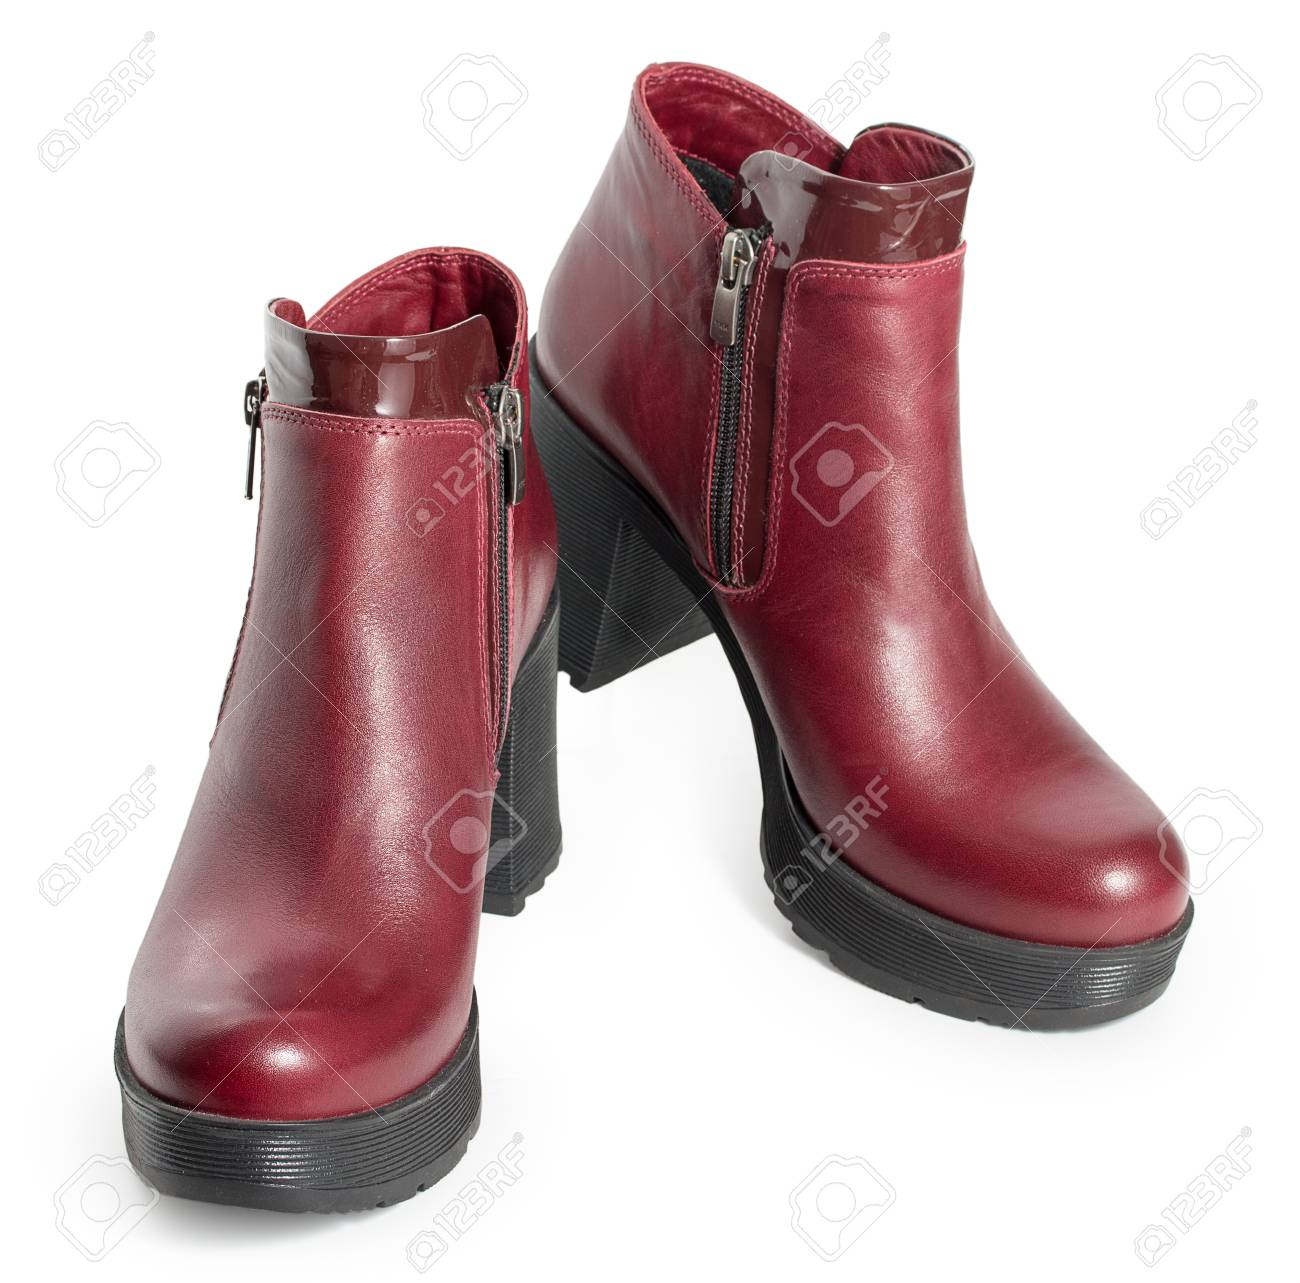 Dark Red Womens Leather Boots Isolated